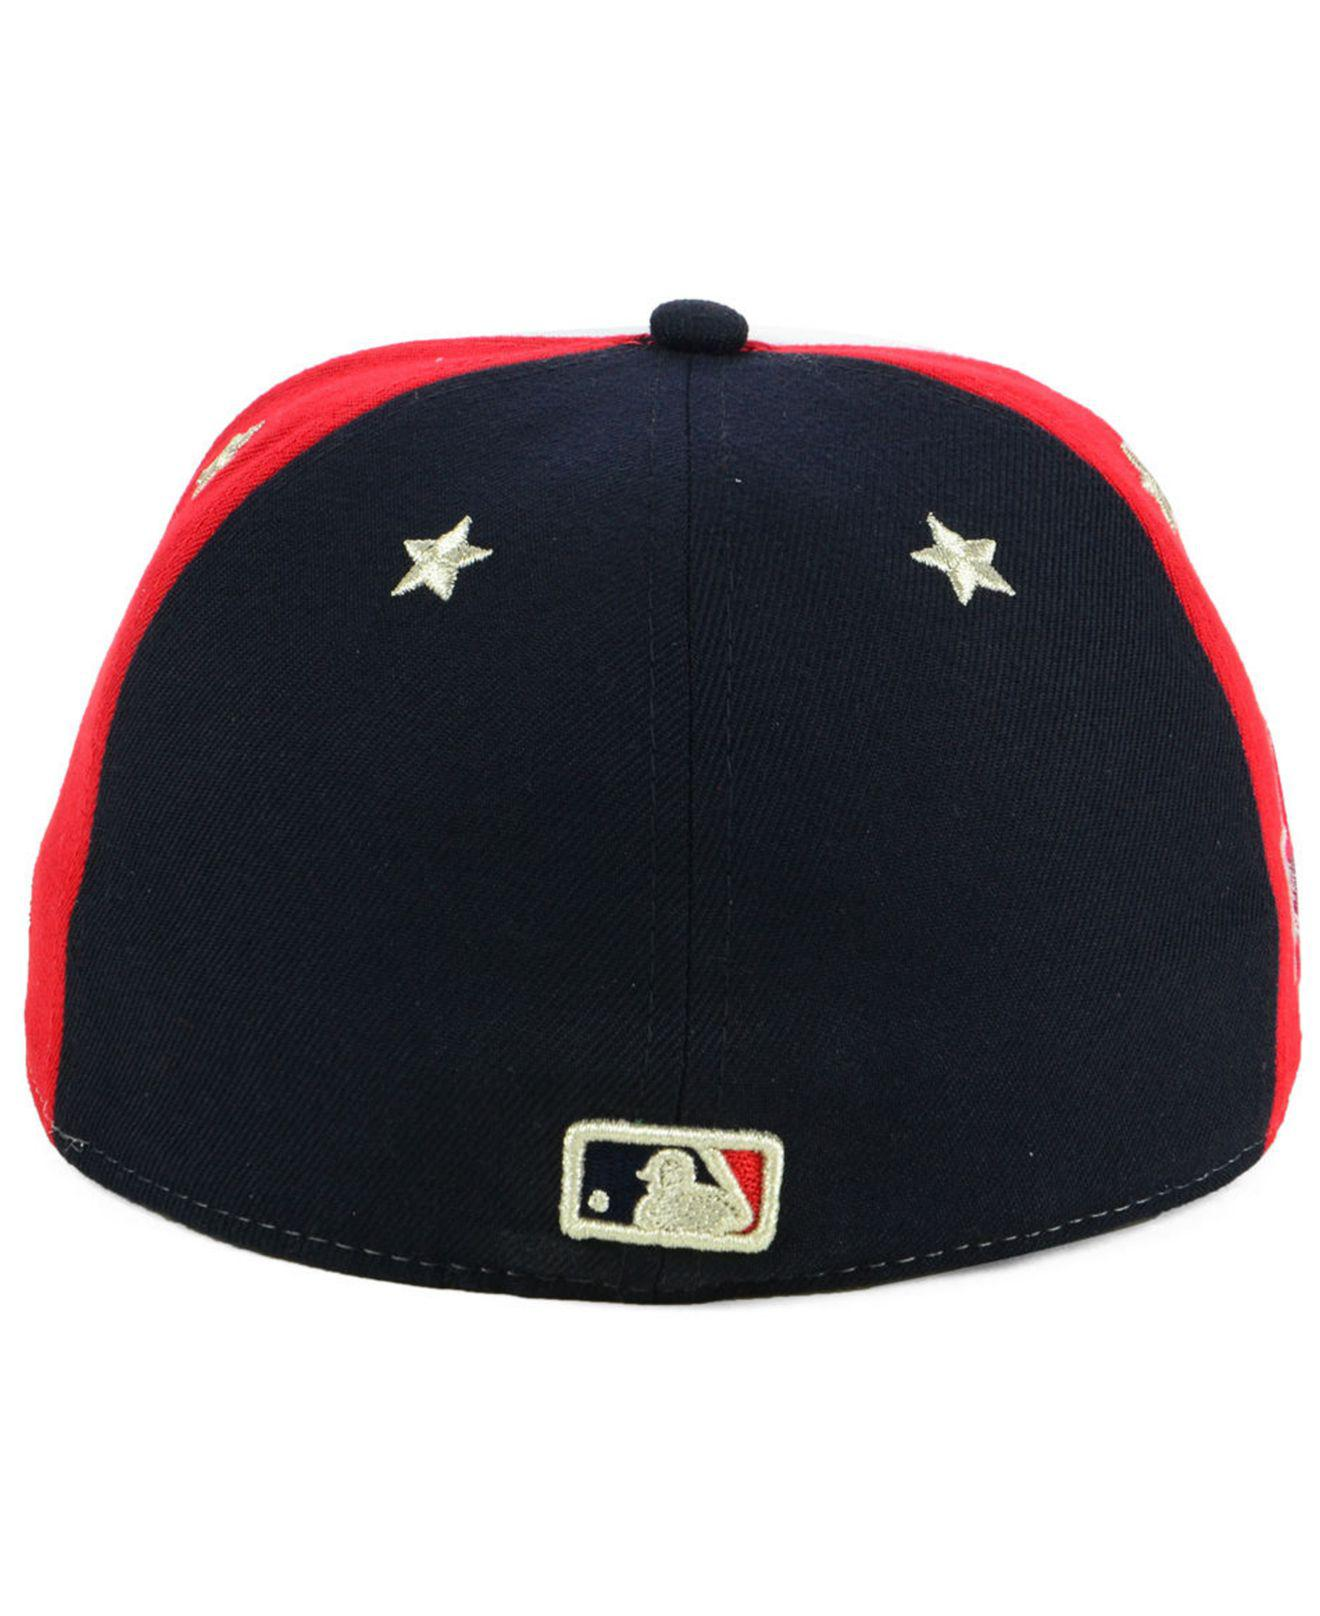 6d1f3e1965edba ... cheap st. louis cardinals all star game patch 59fifty fitted cap 2018  for. view